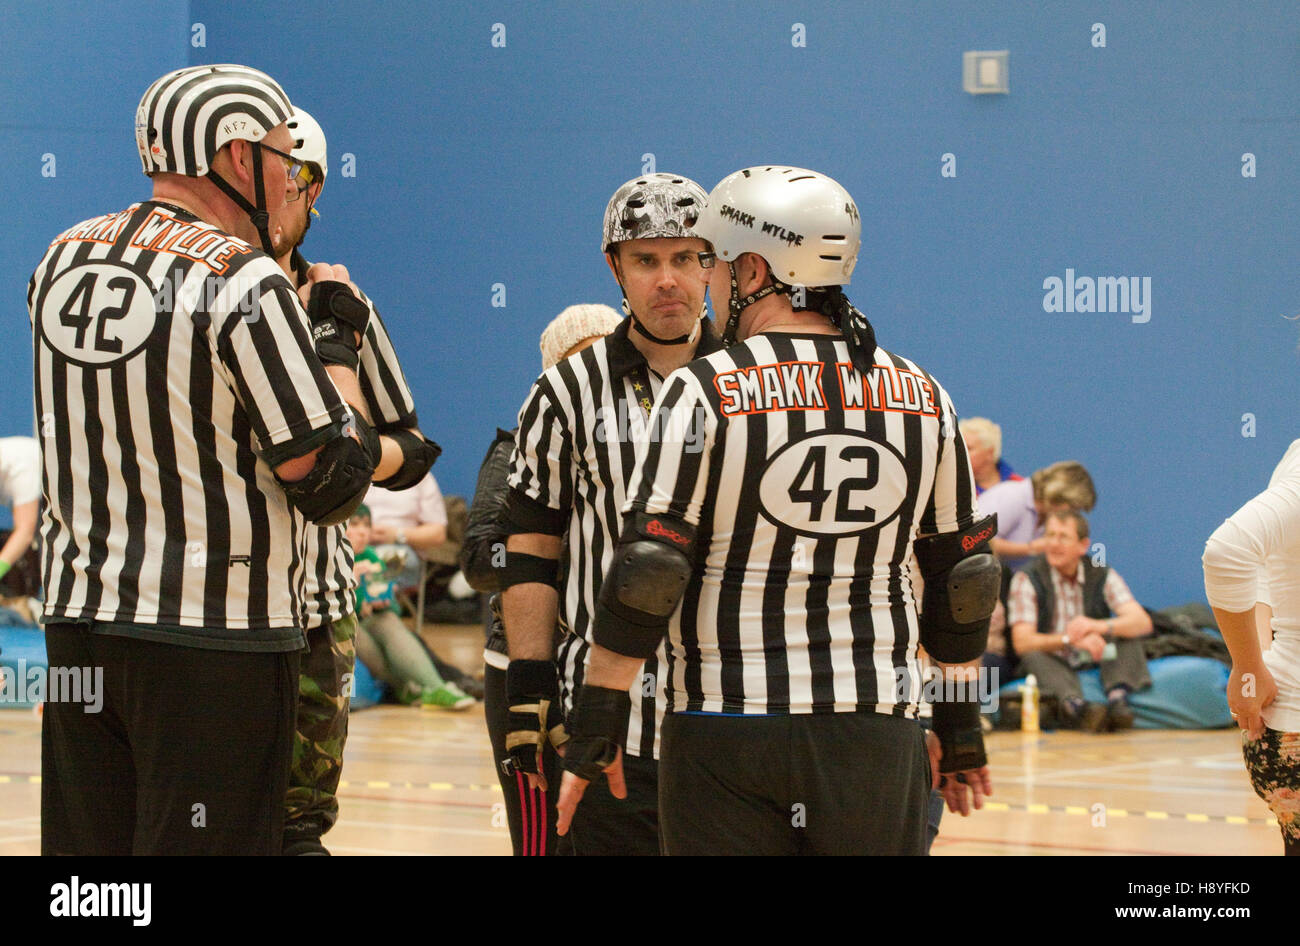 Two roller derby referees wearing the same jersey/top - Stock Image